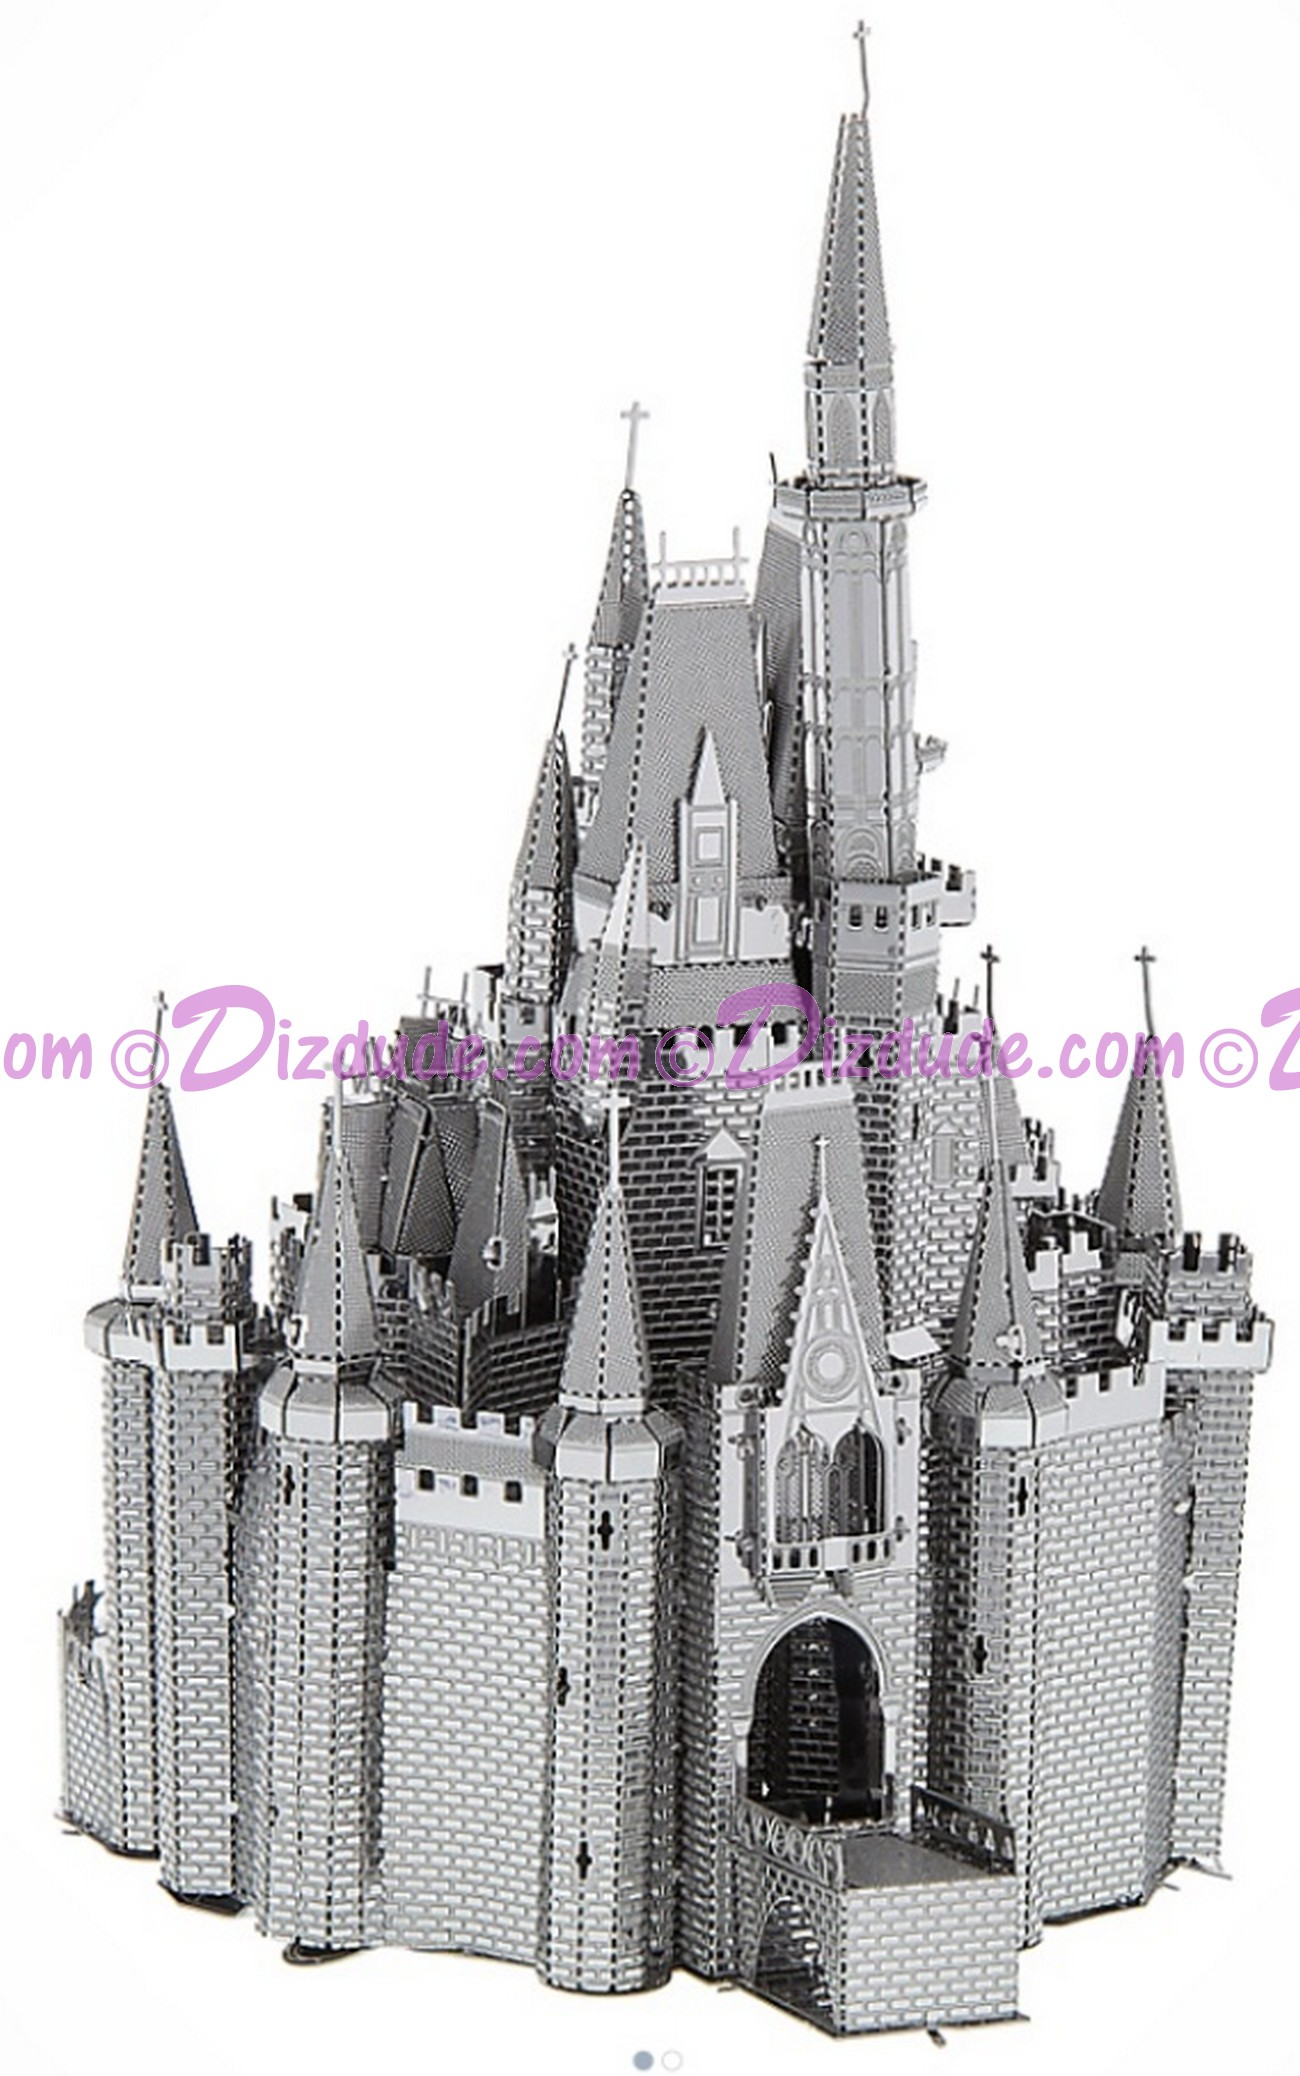 Walt Disney World Cinderella's Castle 3D Metal Model Kit - Disney Exclusive © Dizdude.com